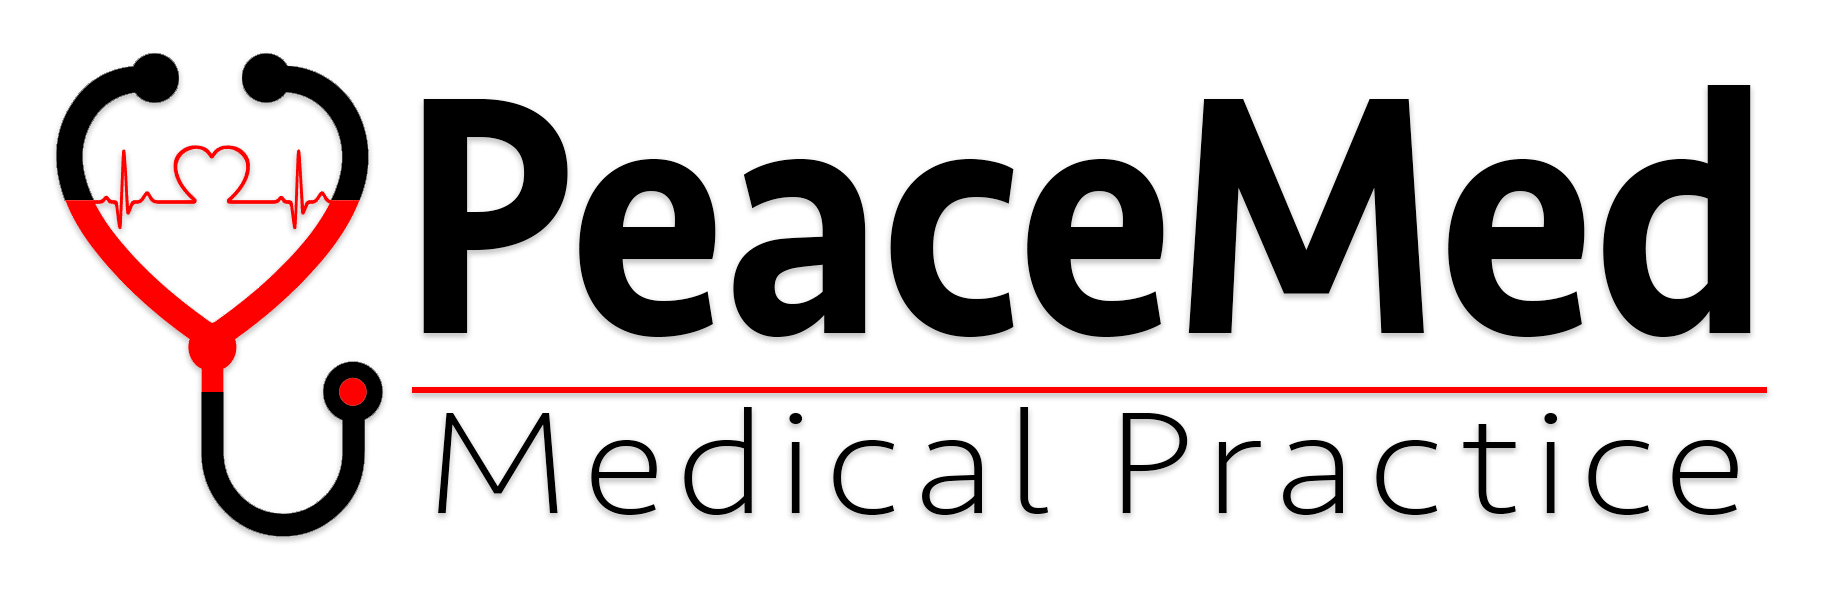 PeaceMed Medical Practice